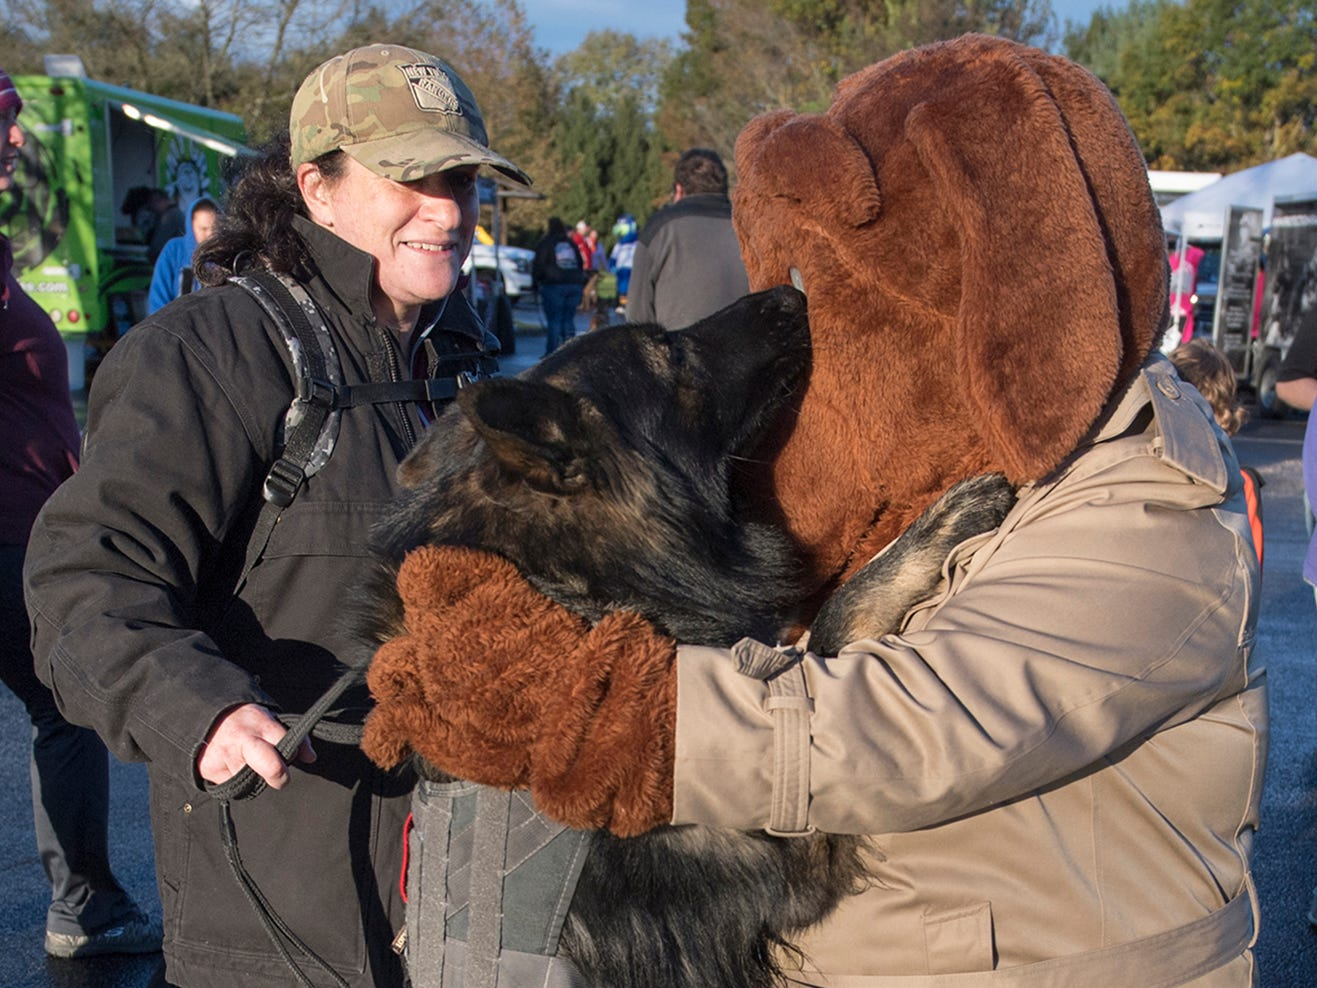 Dog-inclusive event raises funds for York County Sheriff's K-9 Unit, promotes bonding